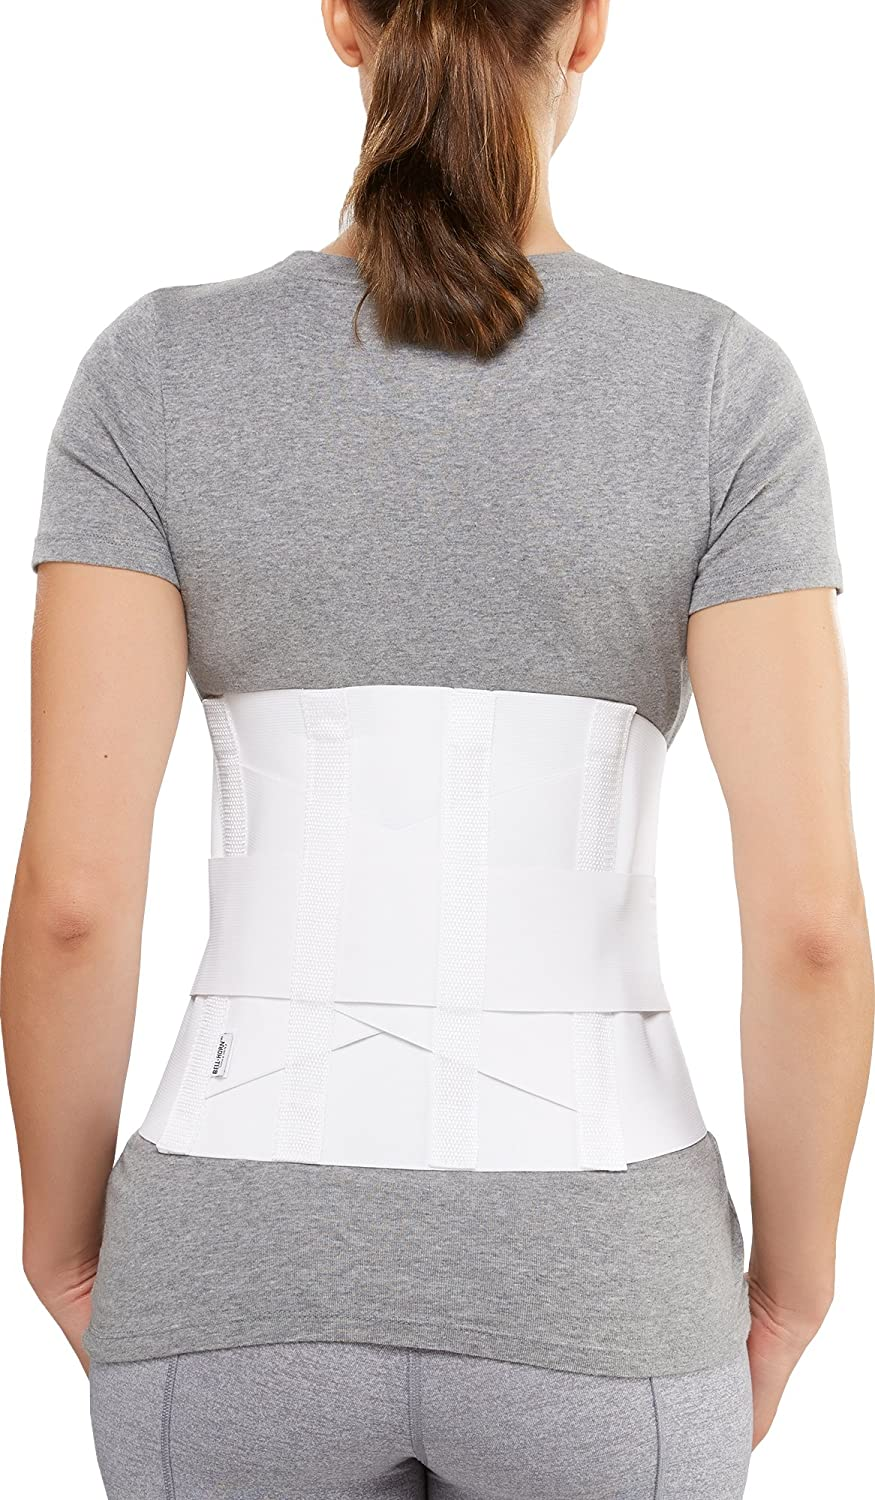 Amazon.com: Bell-Horn CrissCross Lumbosacral Lower Back Support Brace, XXX-Large (Waist: 56